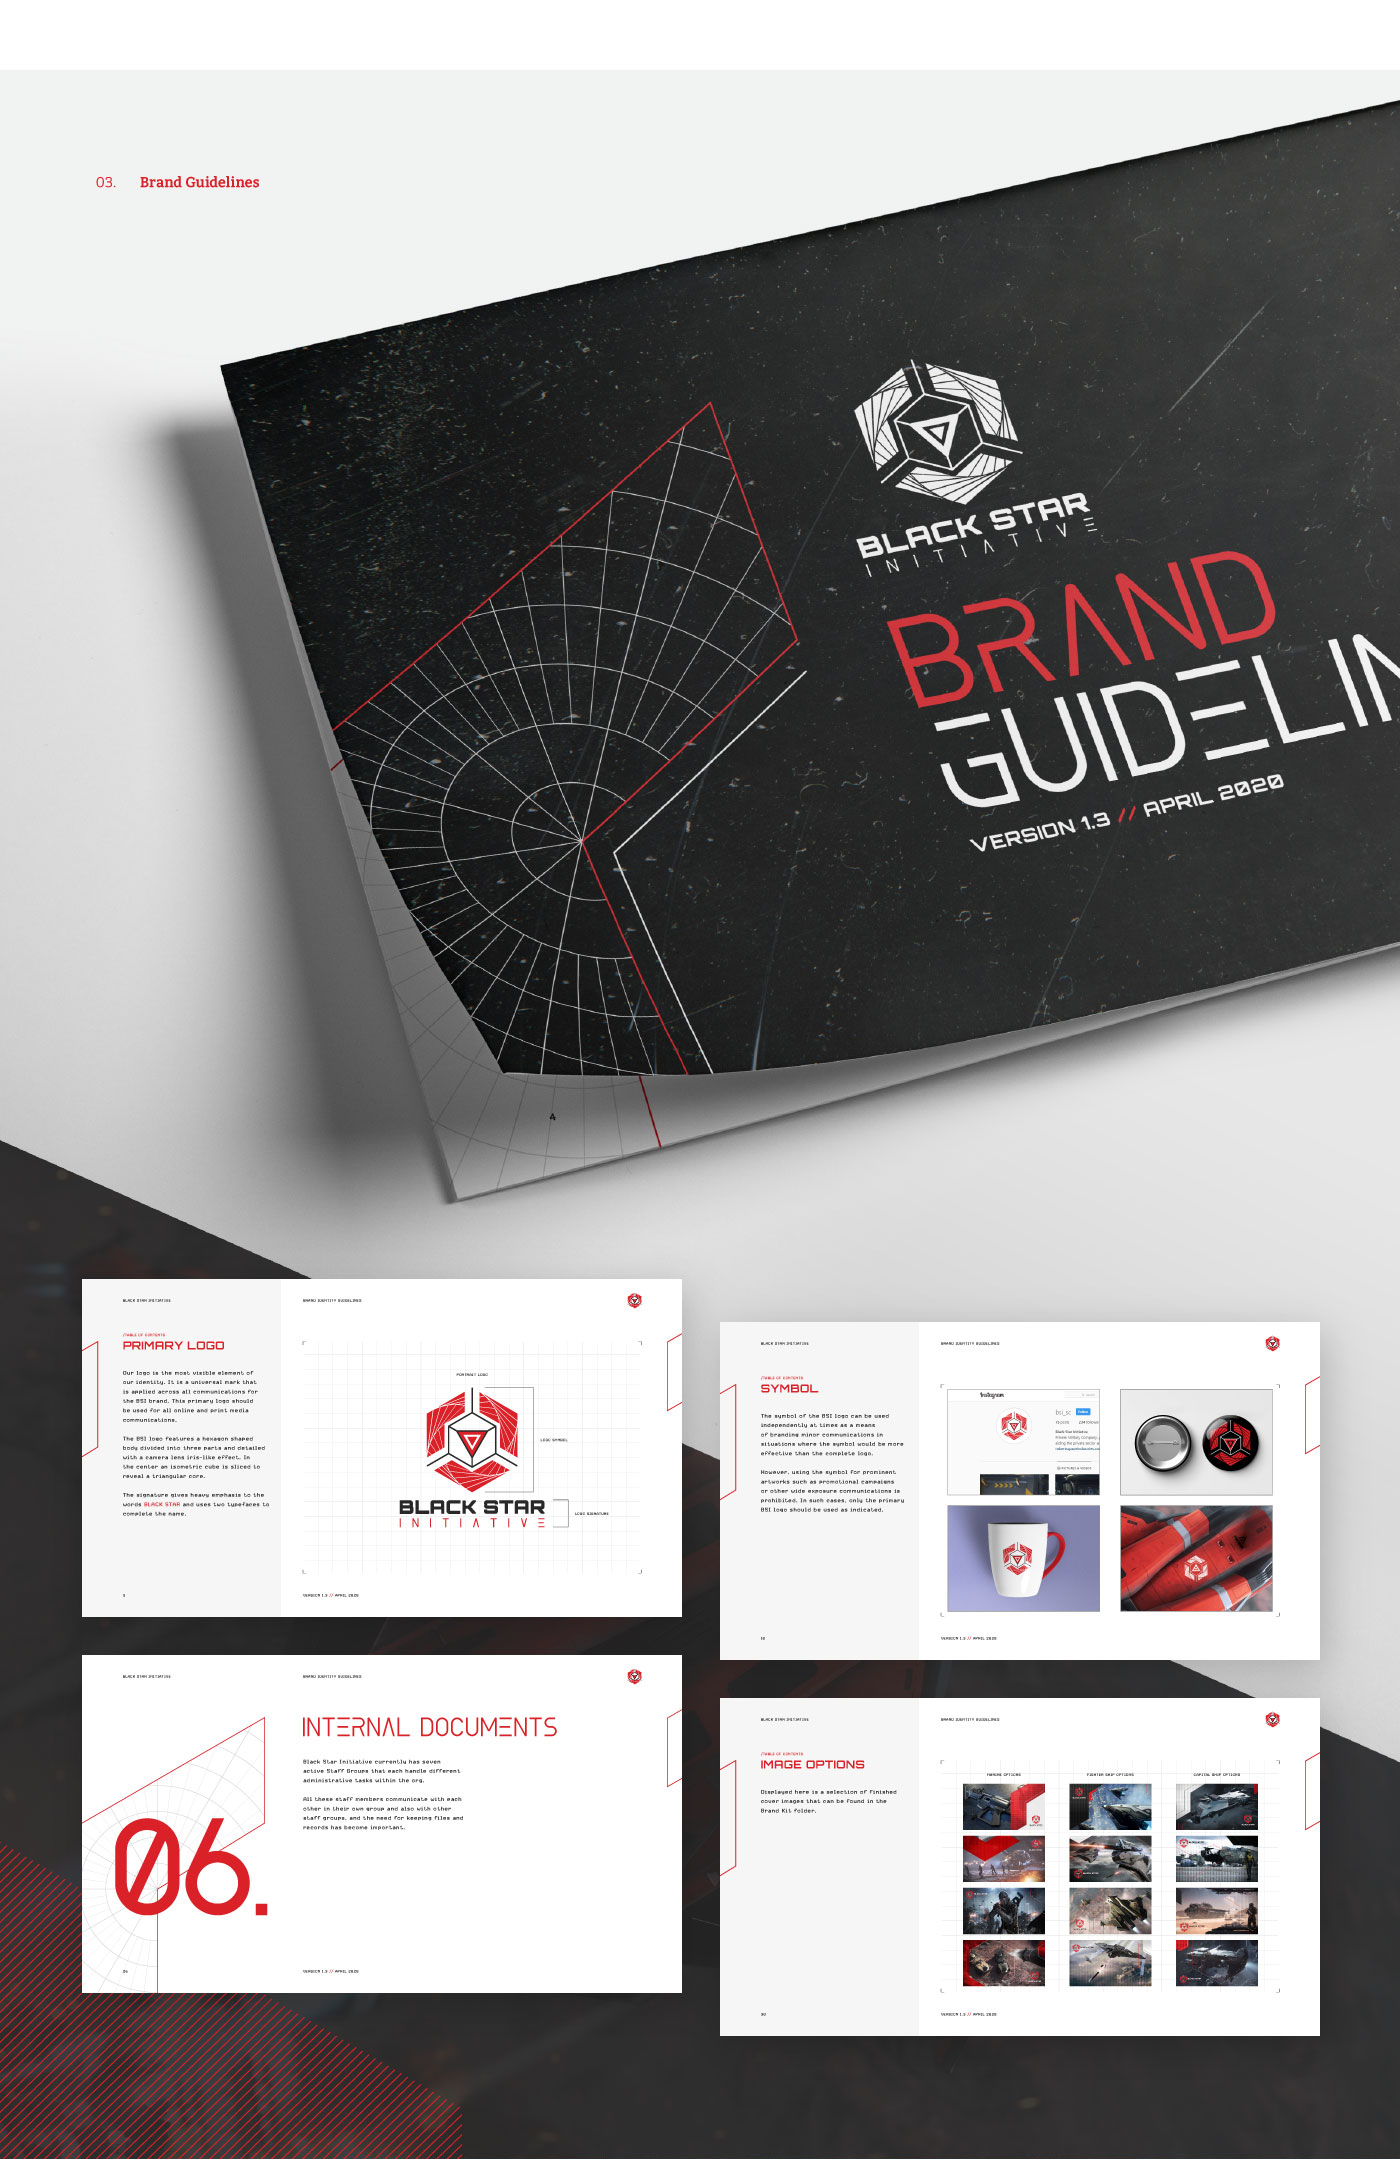 Sample pages from the BSI brand guidelines